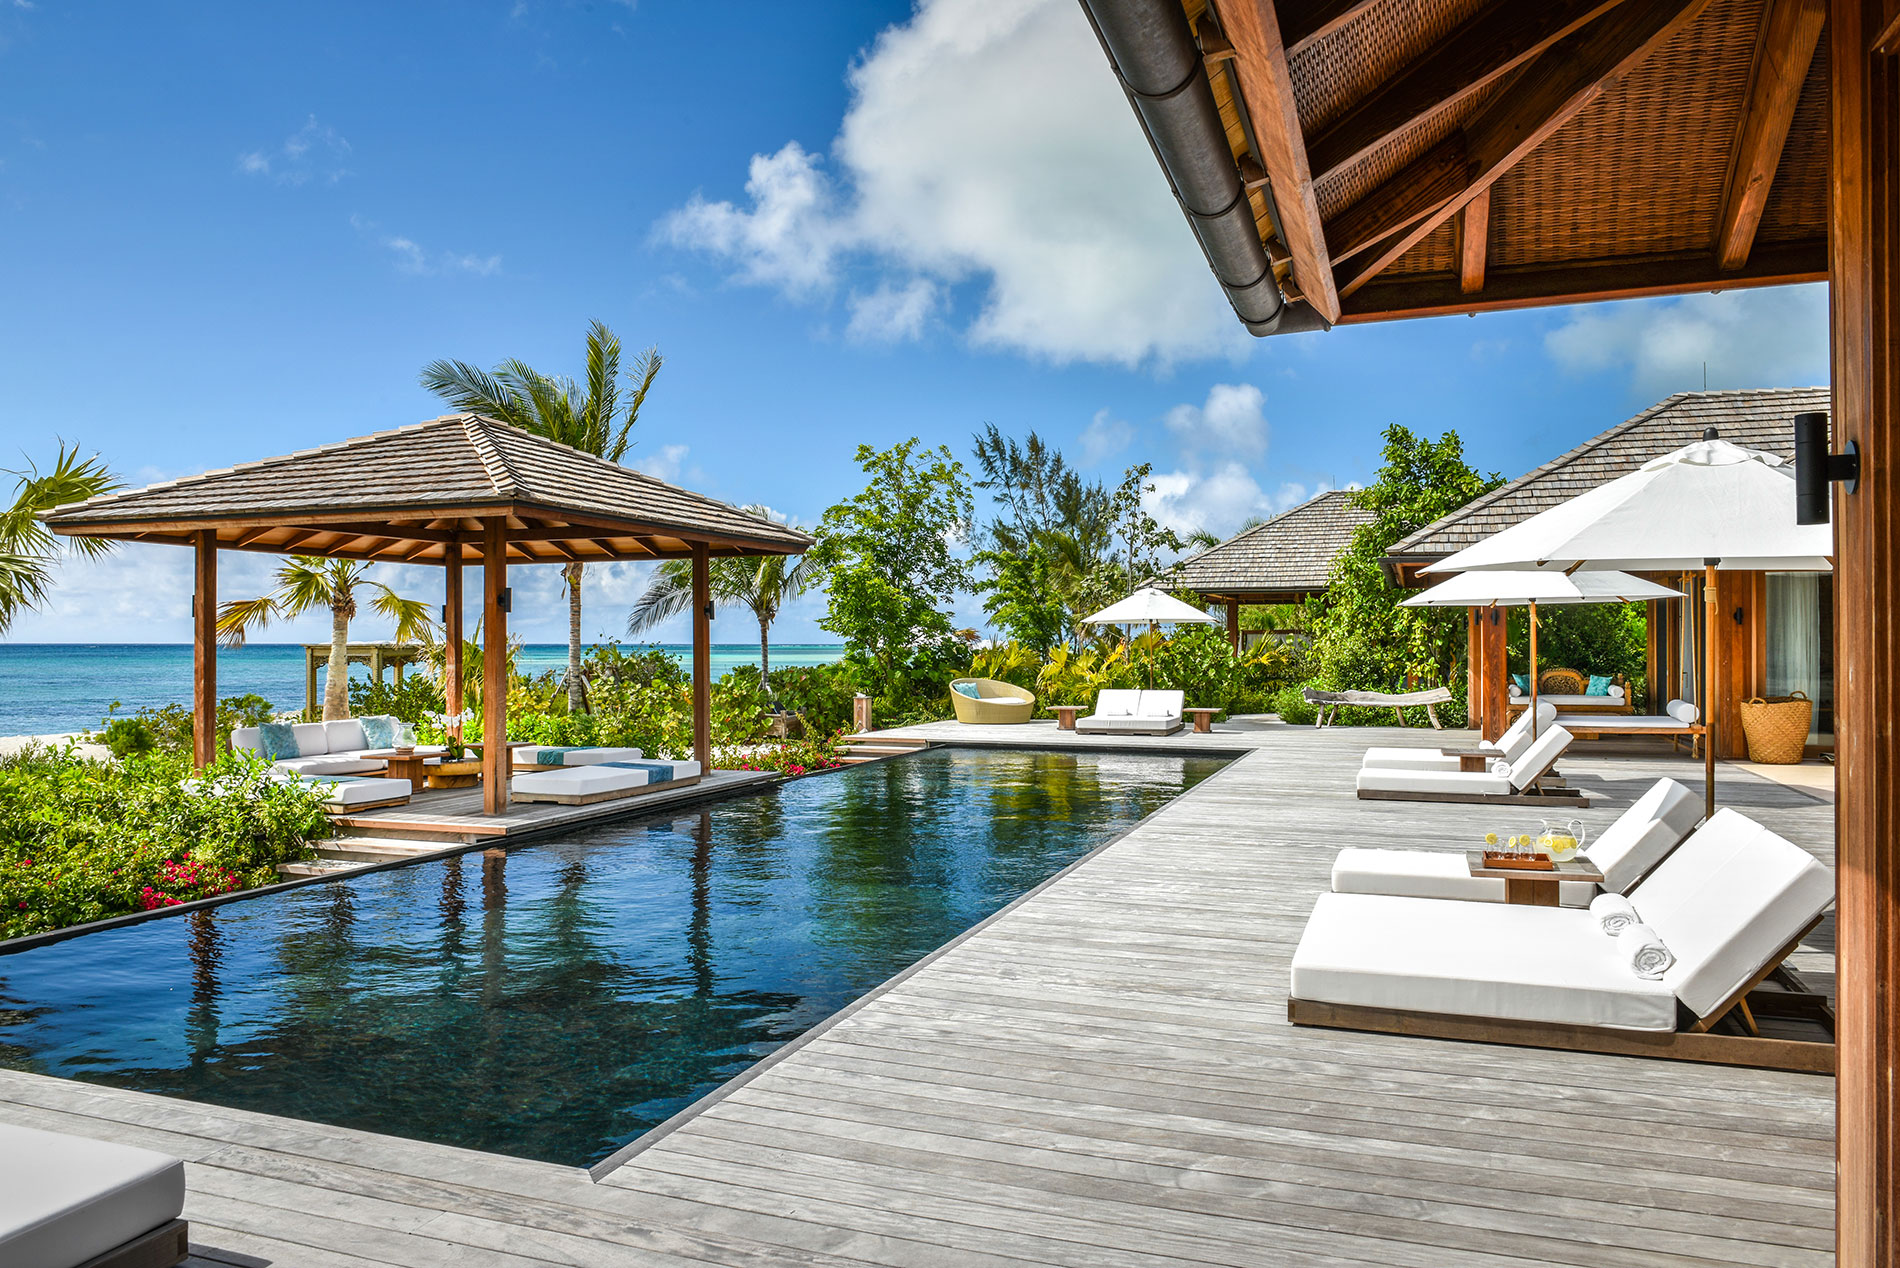 Parrot Cay Como, Turks and Caicos Luxury Resort and a Partner Hotel of The Luxury Travel Agency